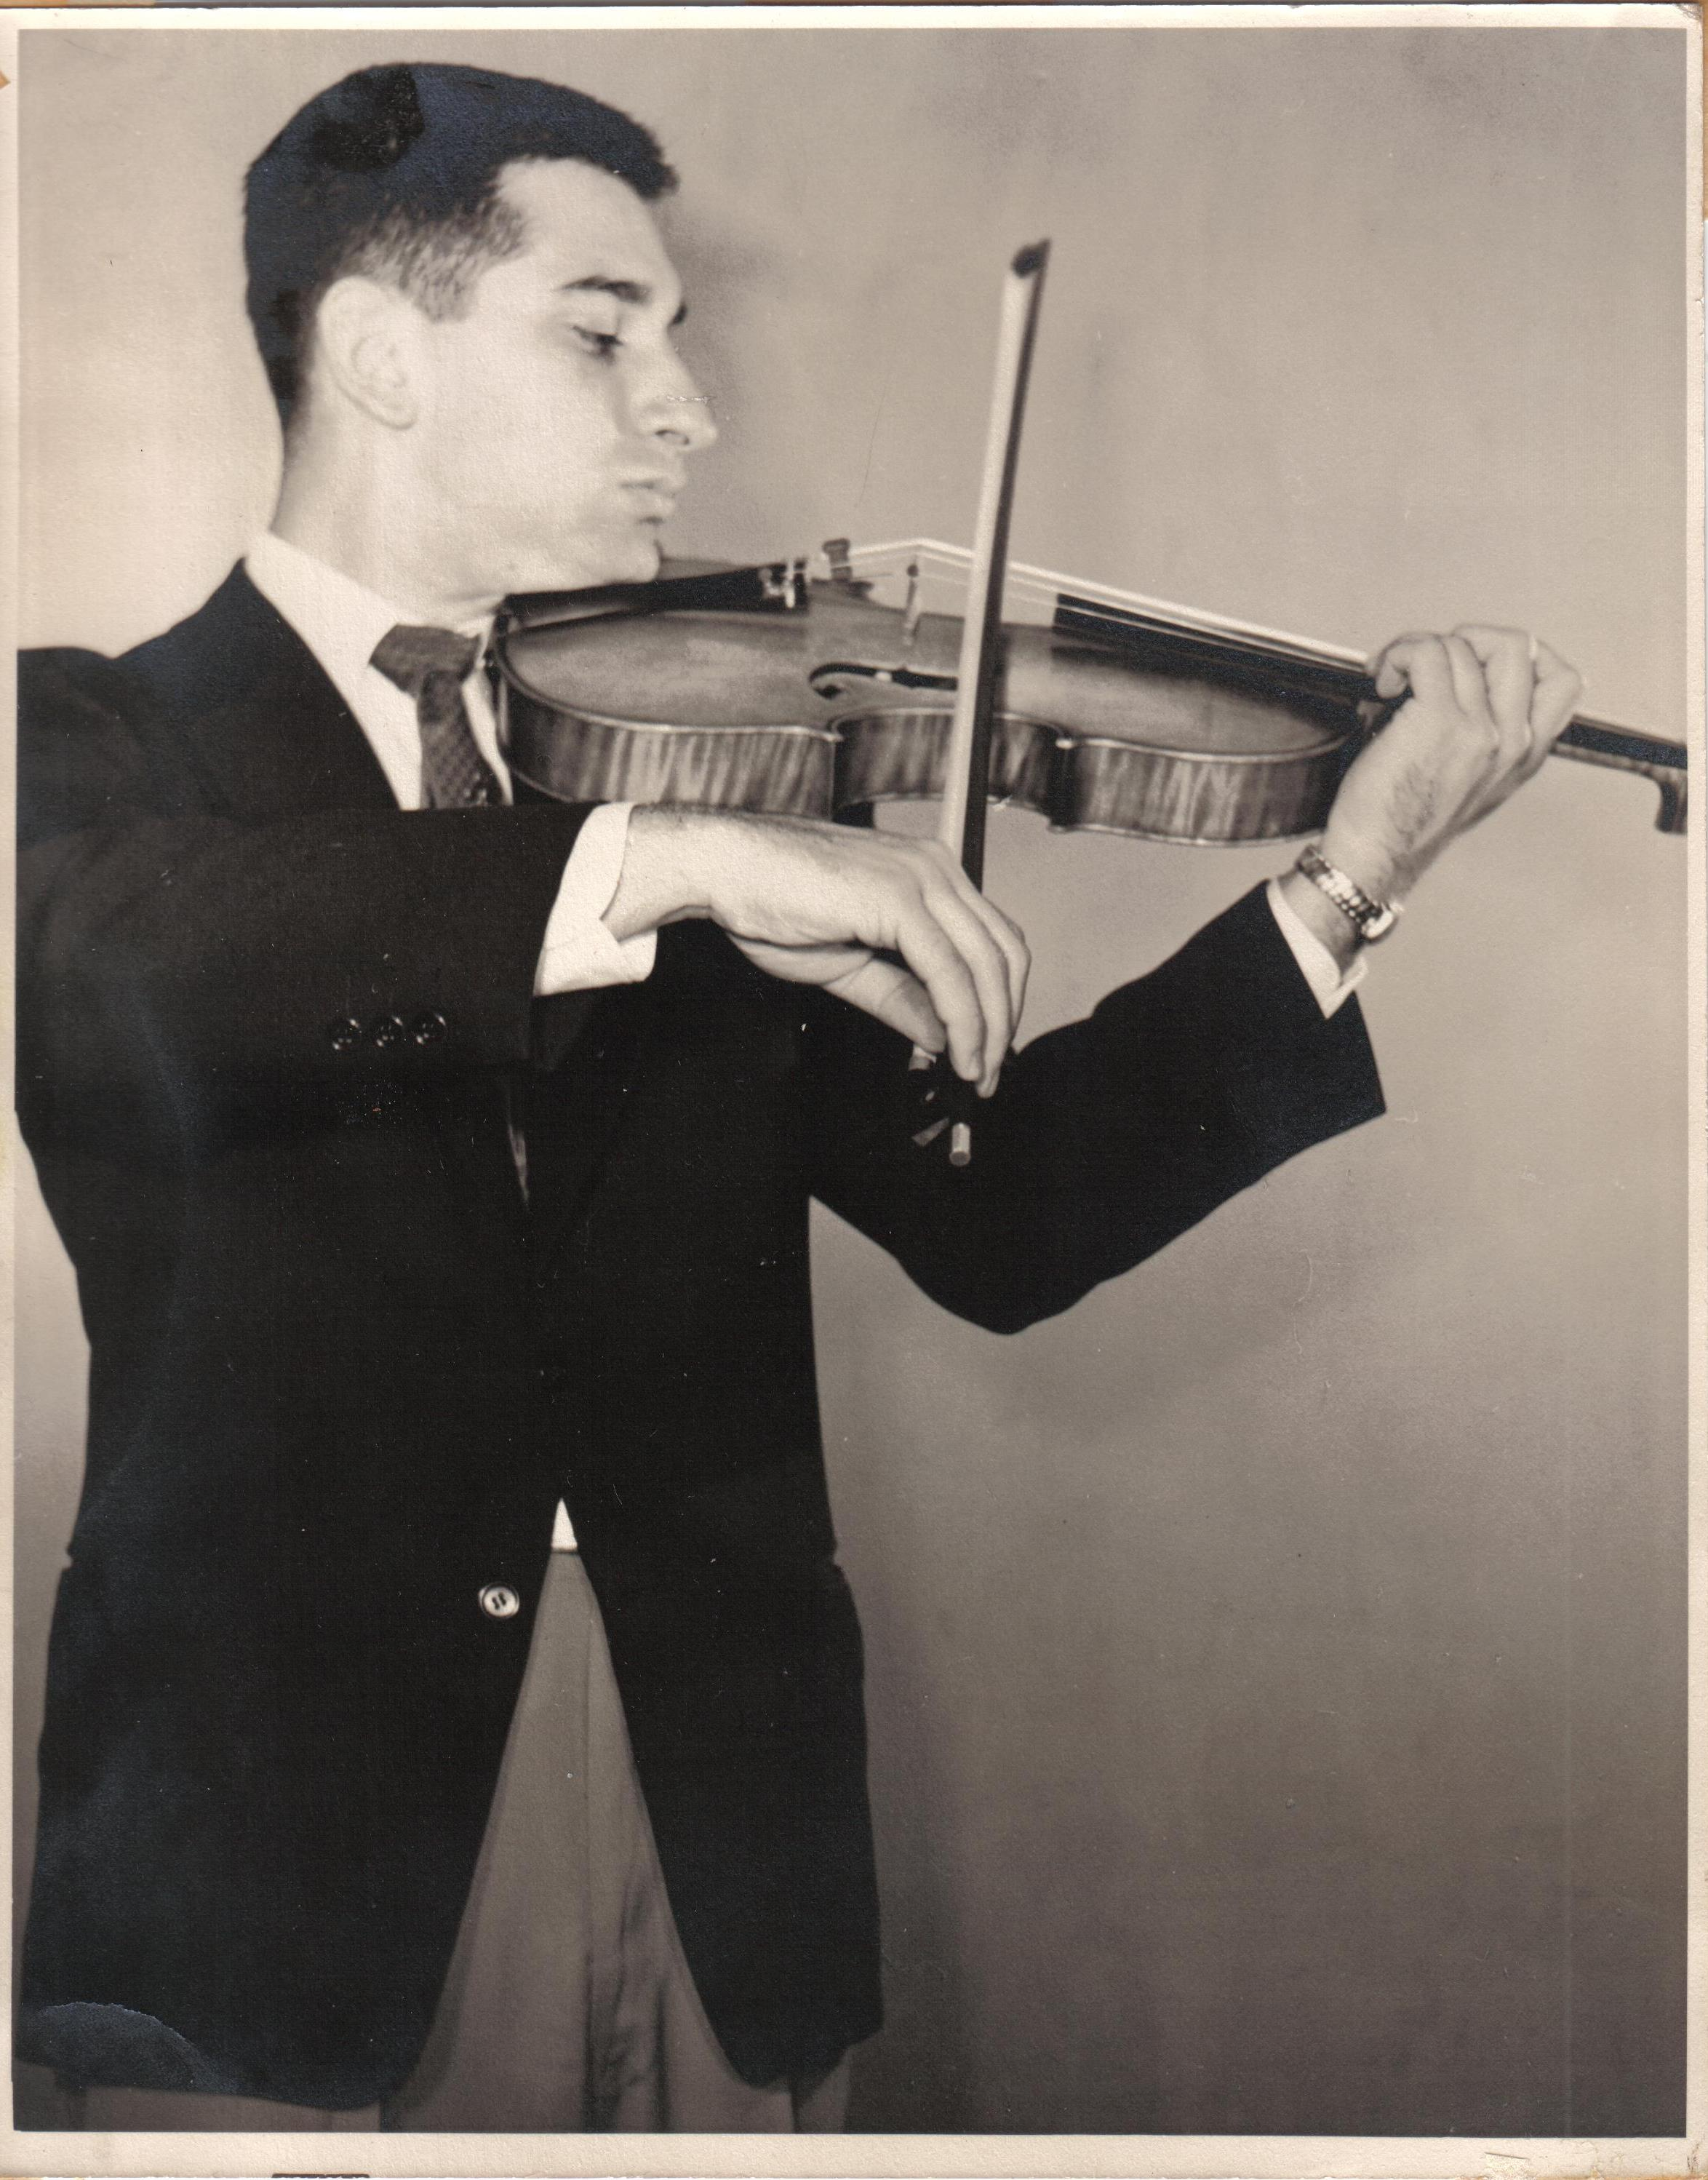 C. Victor Lionti in 1954 ; at this time, the elder Mr. Lionti was a member of the viola section of the Rochester Philharmonic Orchestra under MET conductor Erich  Leinsdorf , while a senior at the Eastman School of Music (and classmate of future MET concertmaster Raymond  Gniewek )